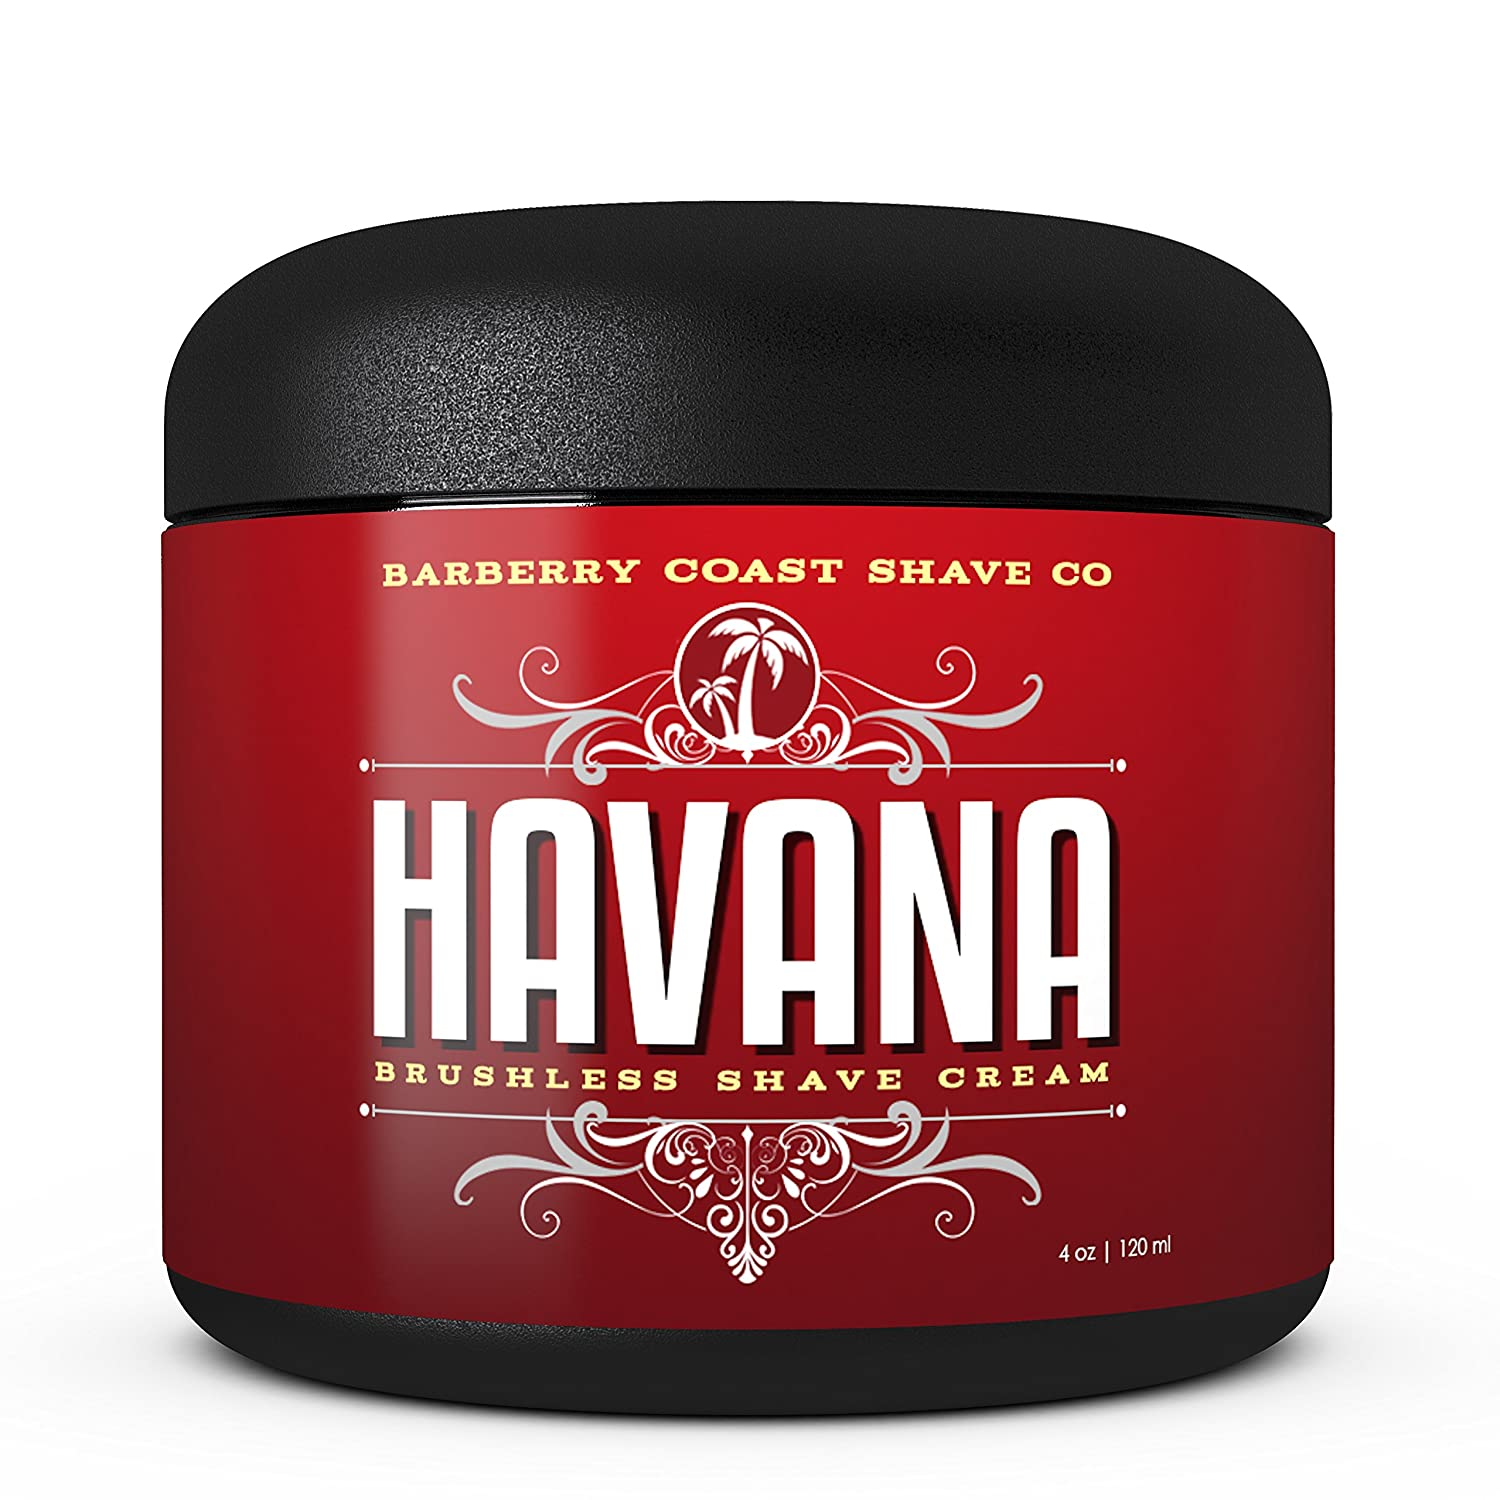 Havana Shaving Cream for Men - Scent: Tobacco, Vanilla, Coco Bean - Made with Shea Butter, White Tea & All Natural Ingredients